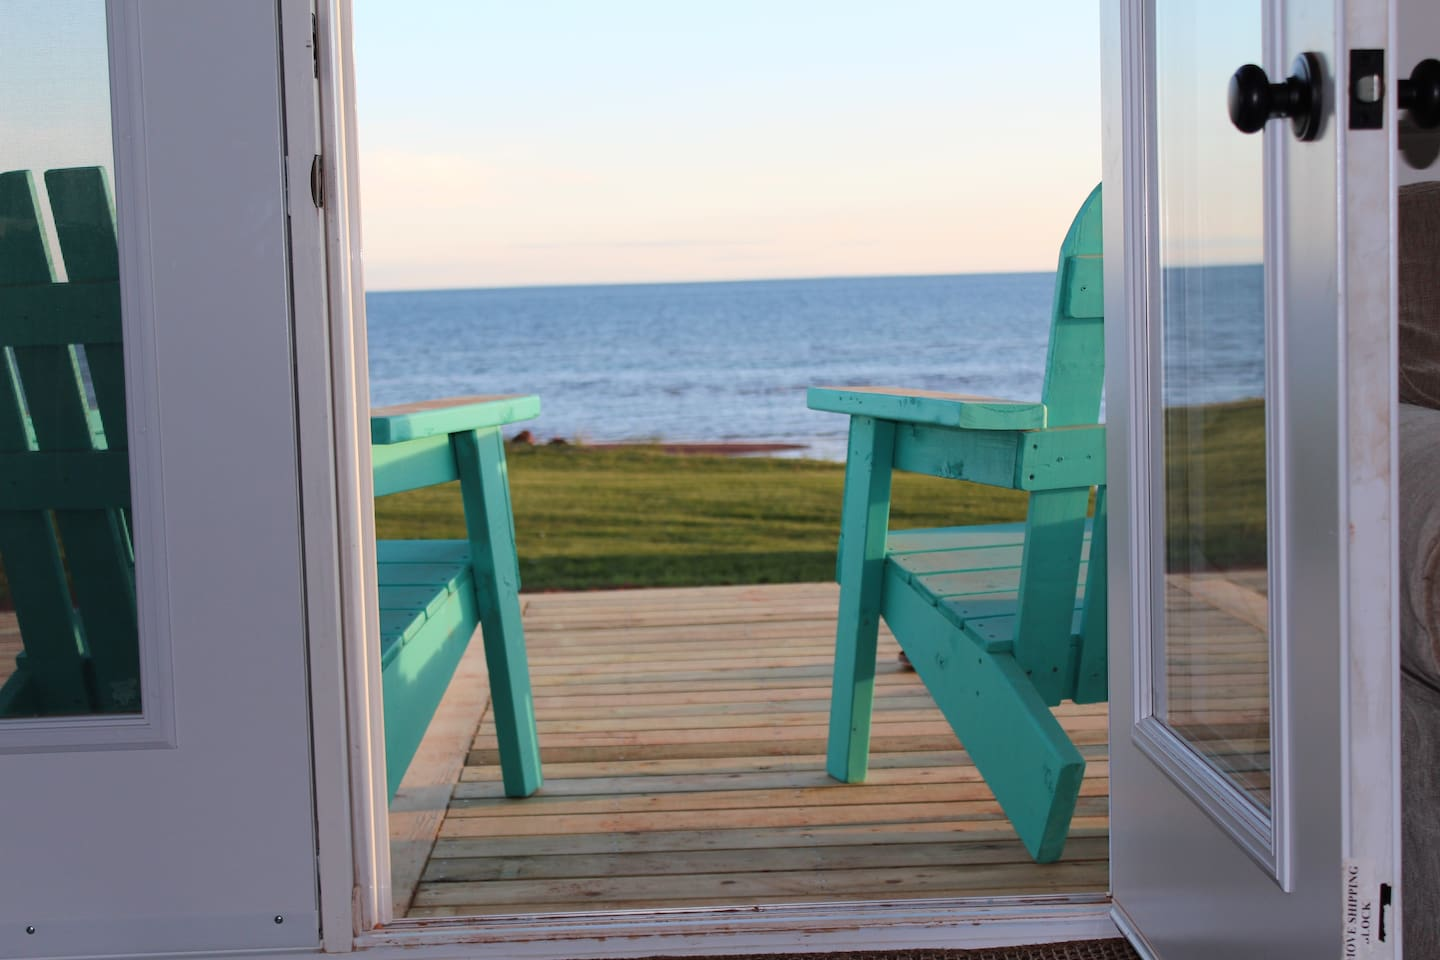 You are just steps away from the beautiful south shore of PEI.